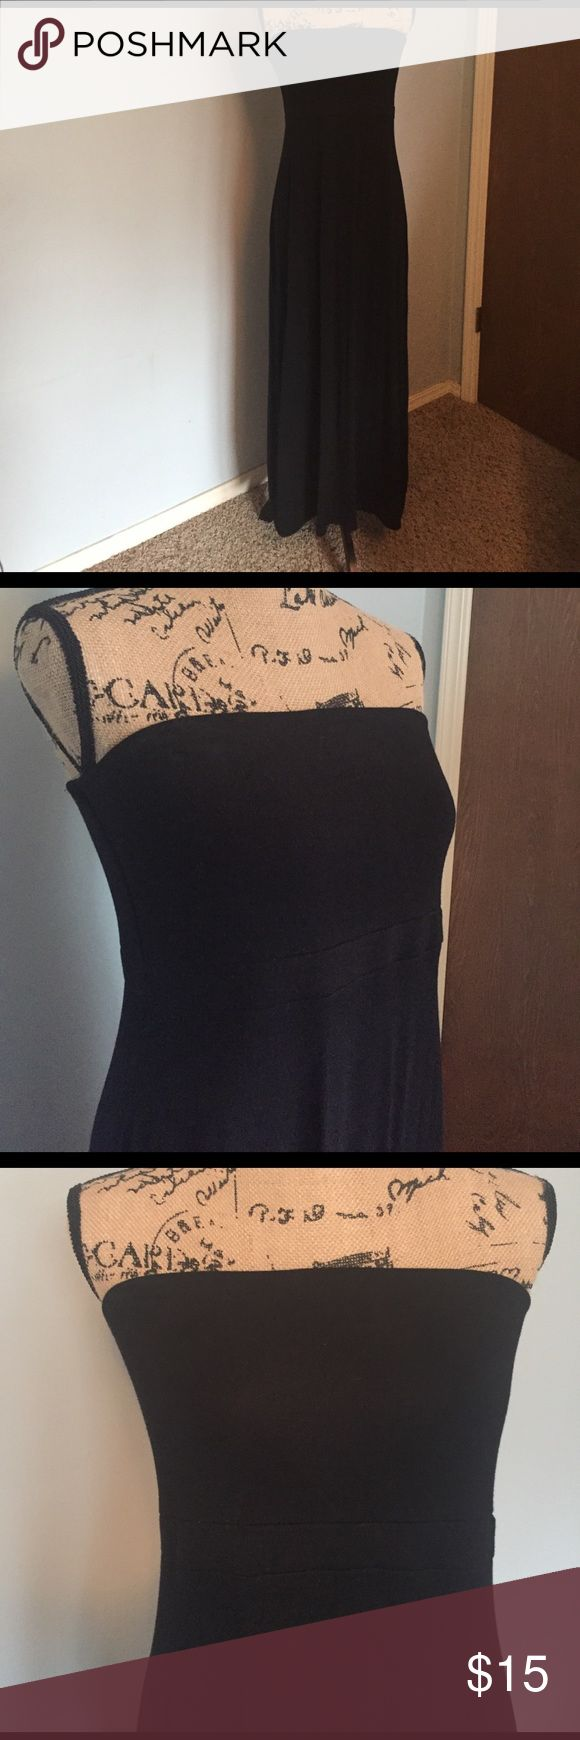 Strapless Maxi Dress Strapless Maxi Dress, size large PETITE. EUC, no rips or stains, little to no piling, little color fading. Worn maybe twice. Old Navy Dresses Strapless